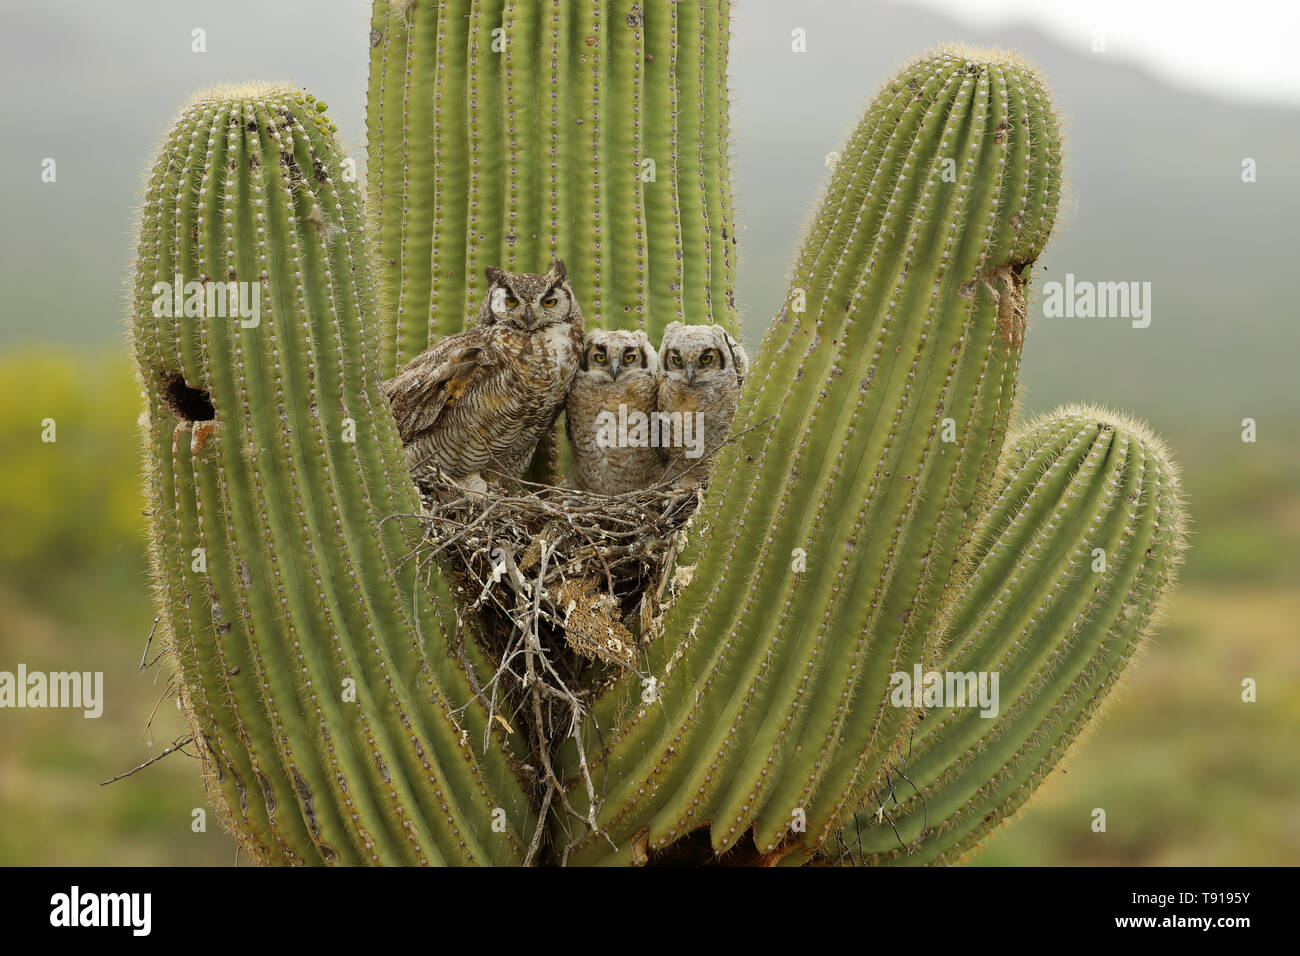 Cactus Porn Dibujo bird nesting on cactus stock photos & bird nesting on cactus